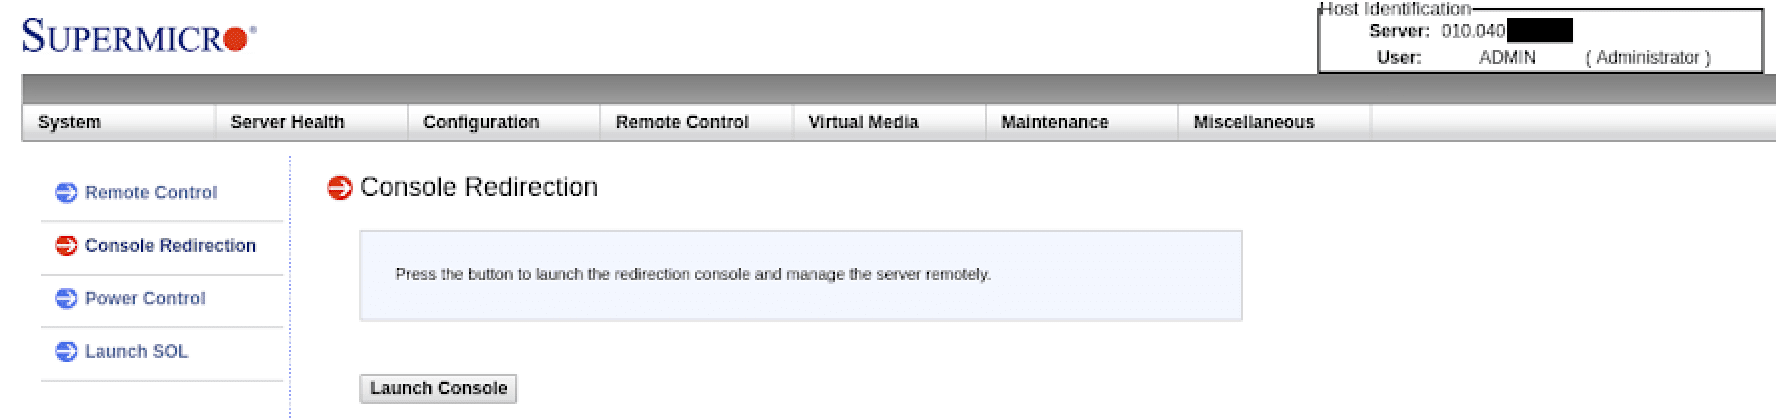 """Console Redirection page shows the """"Launch Console"""" button"""